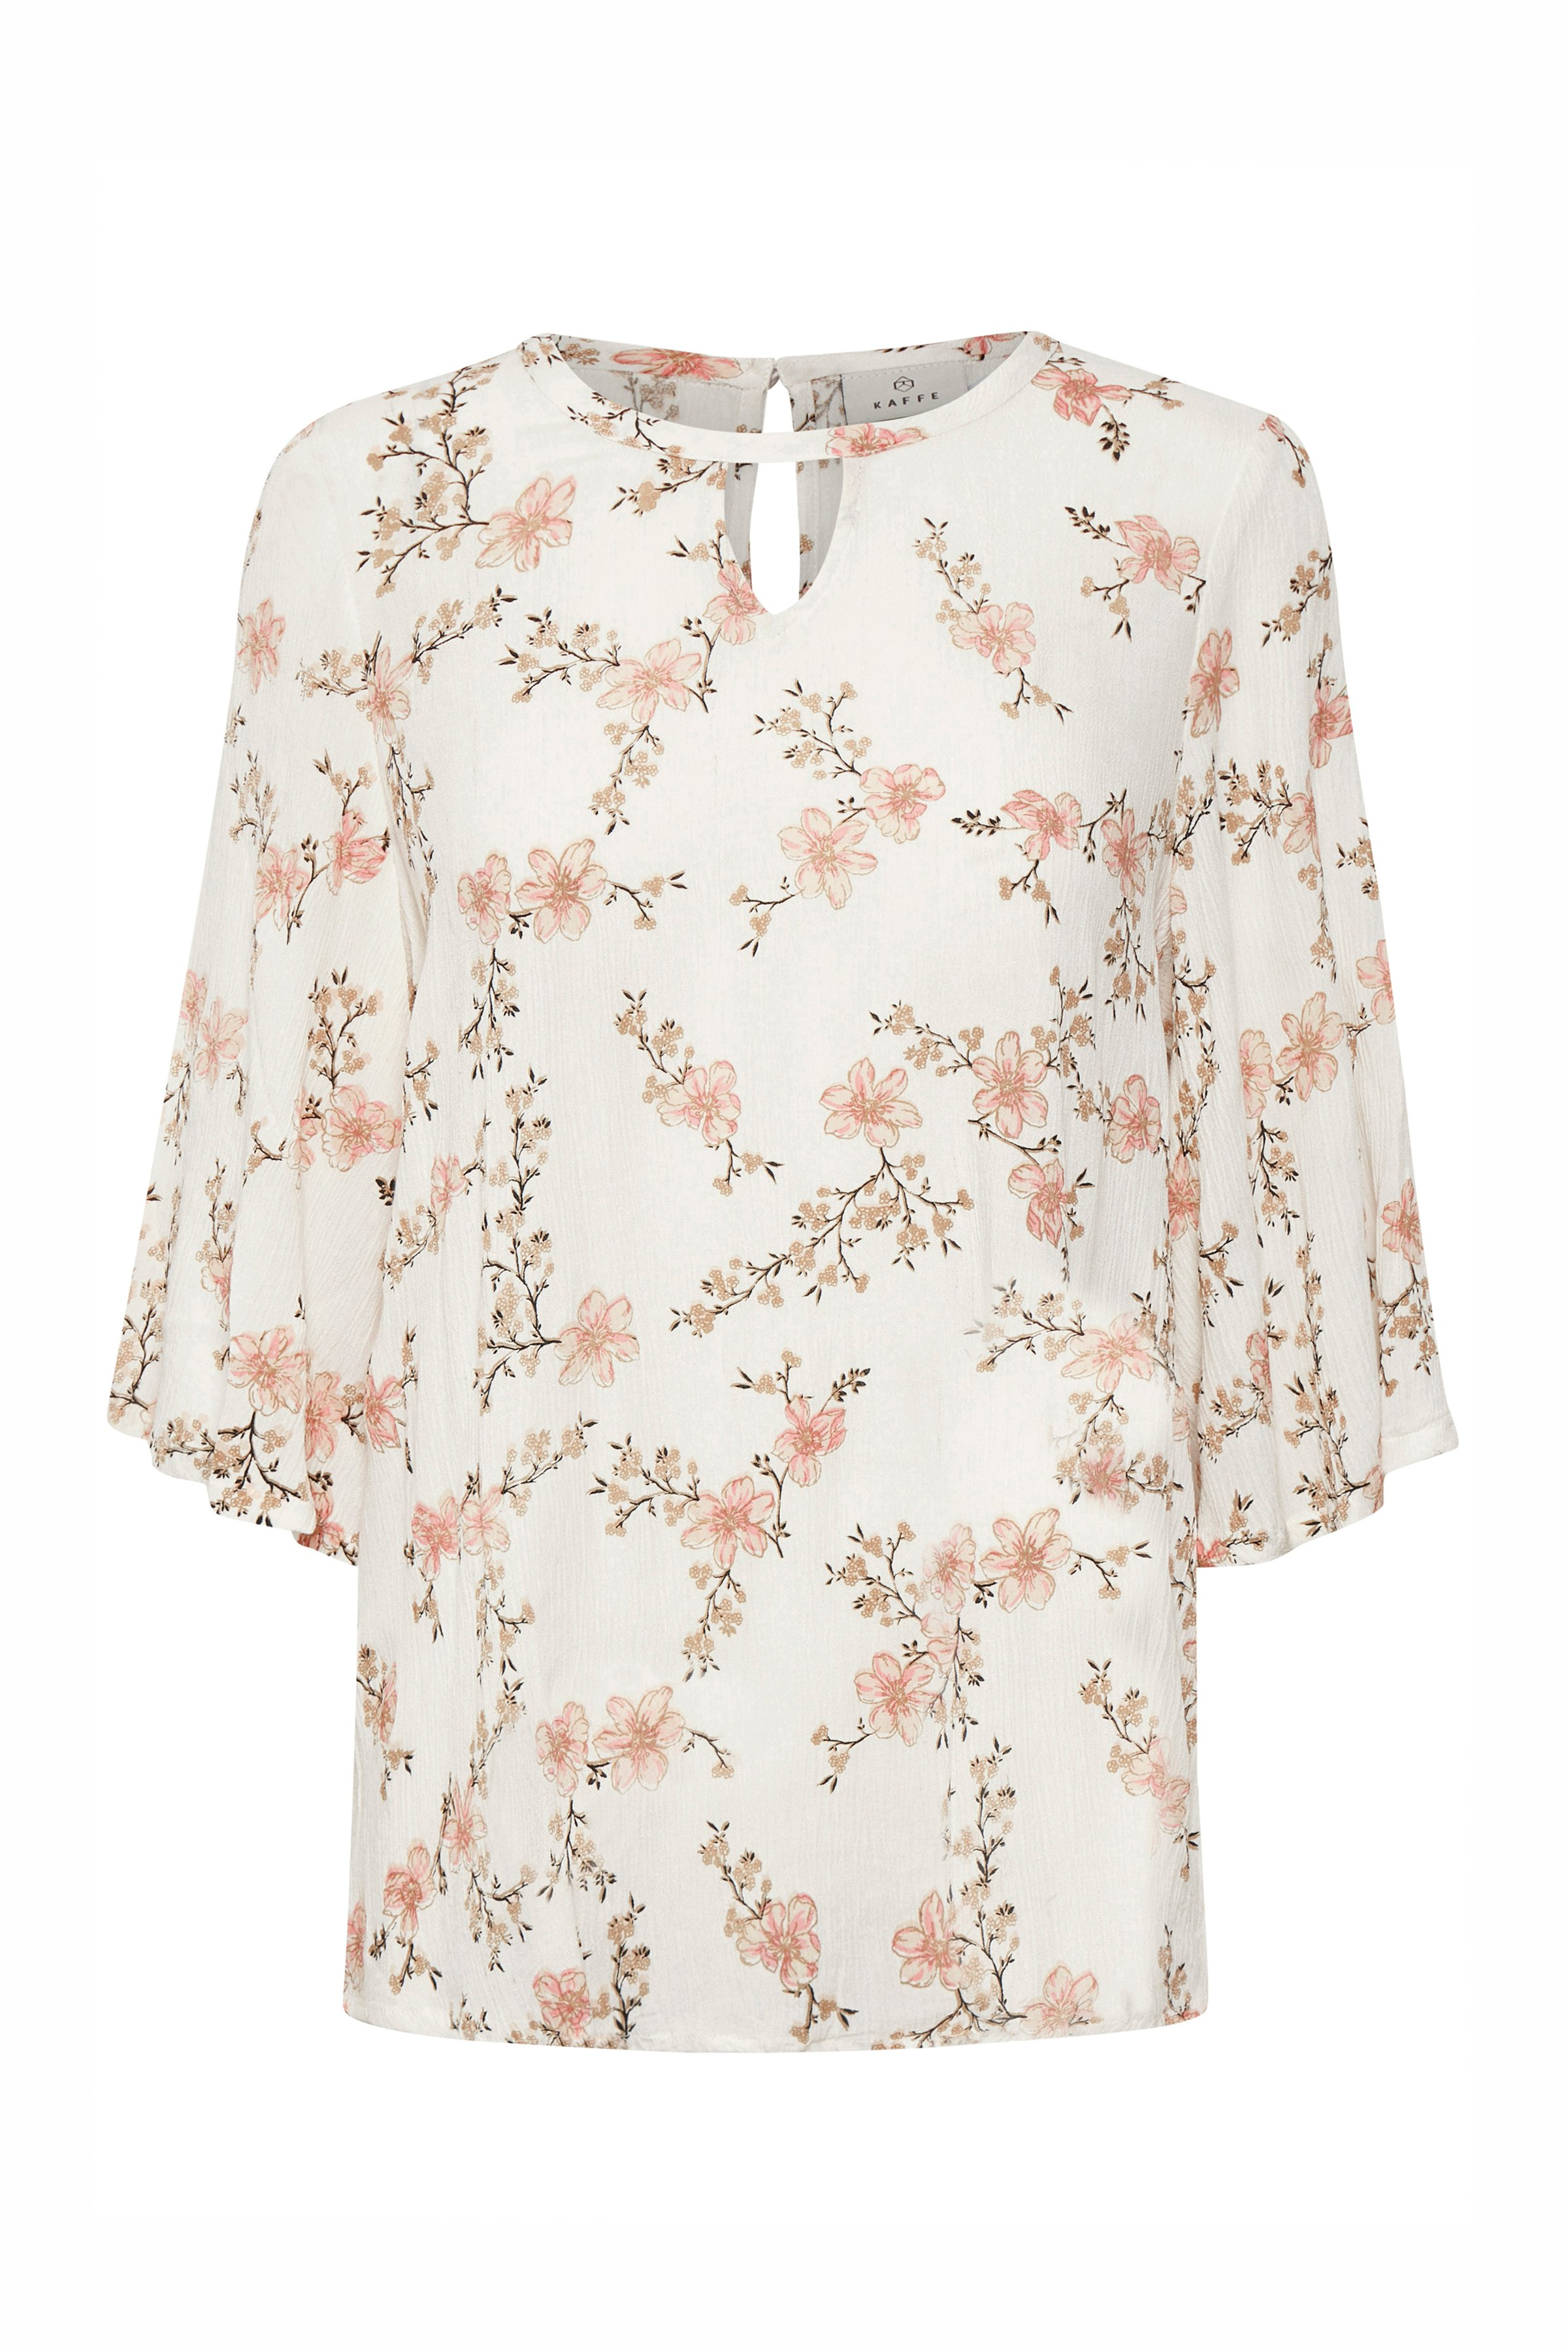 Image of Kaffe Dame Bluse - Off-white/rosa